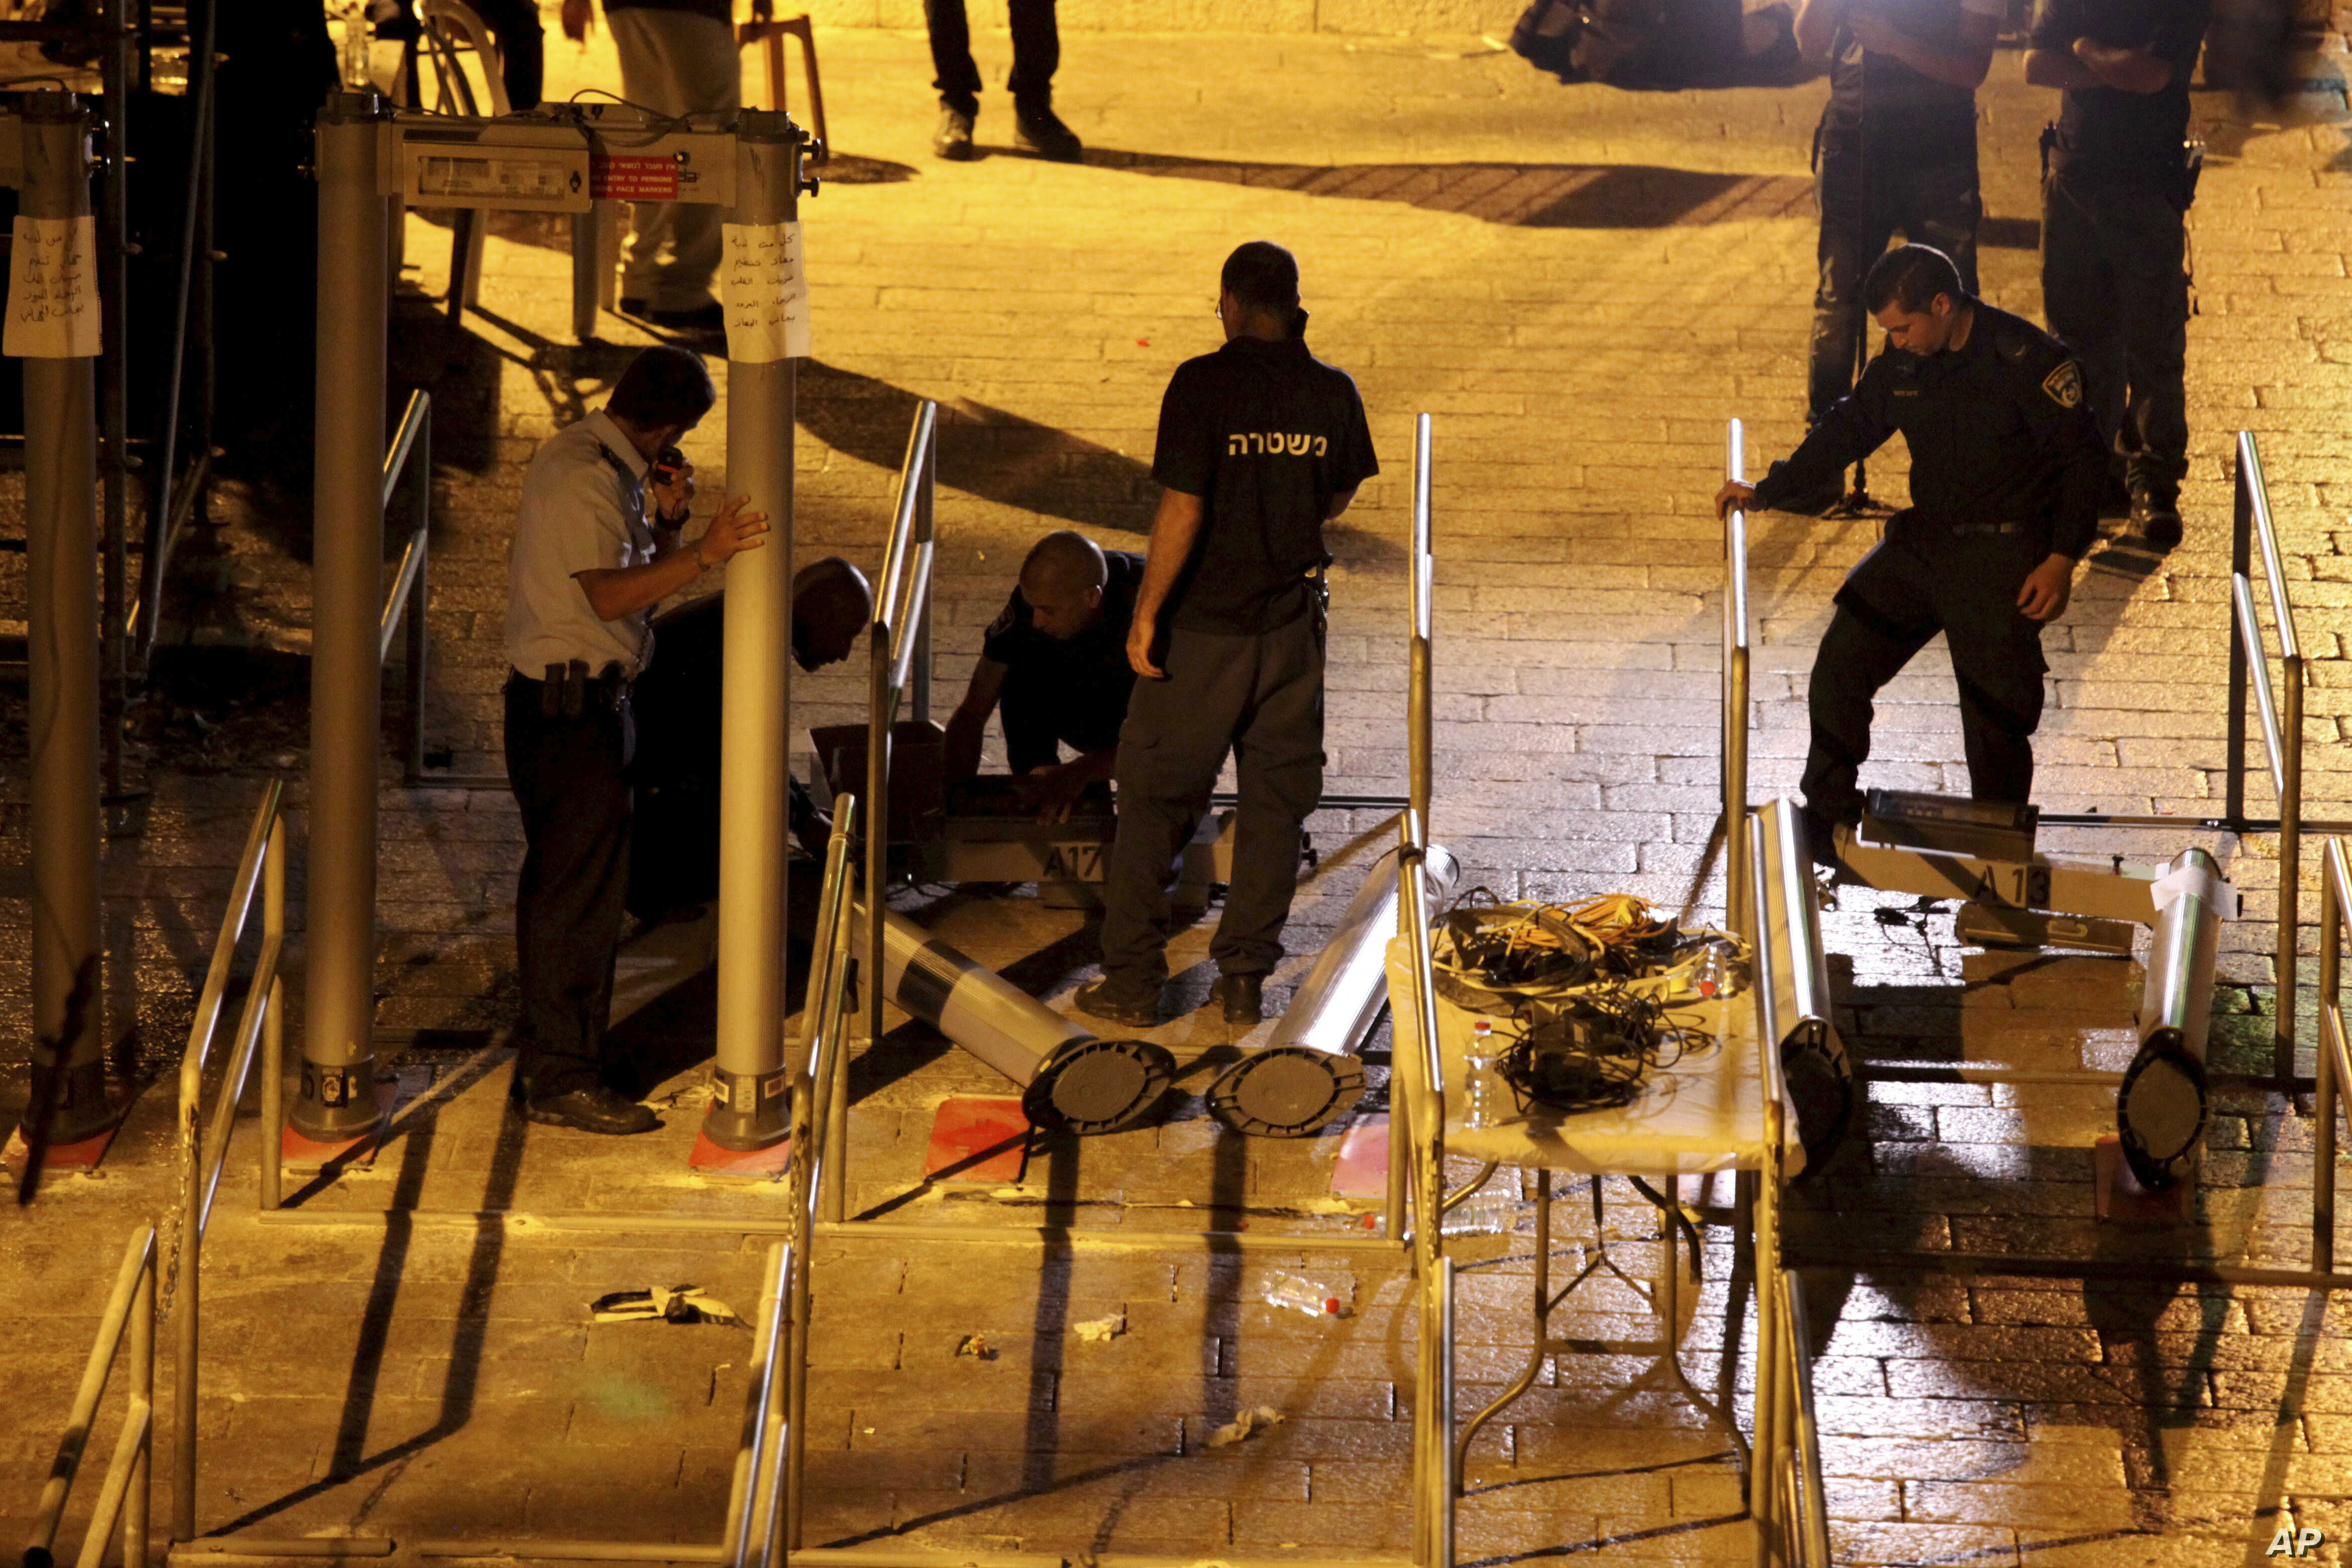 Israeli police officers dismantle metal detectors outside the al-Aqsa Mosque compound in Jerusalem's Old City, July 25, 2017.